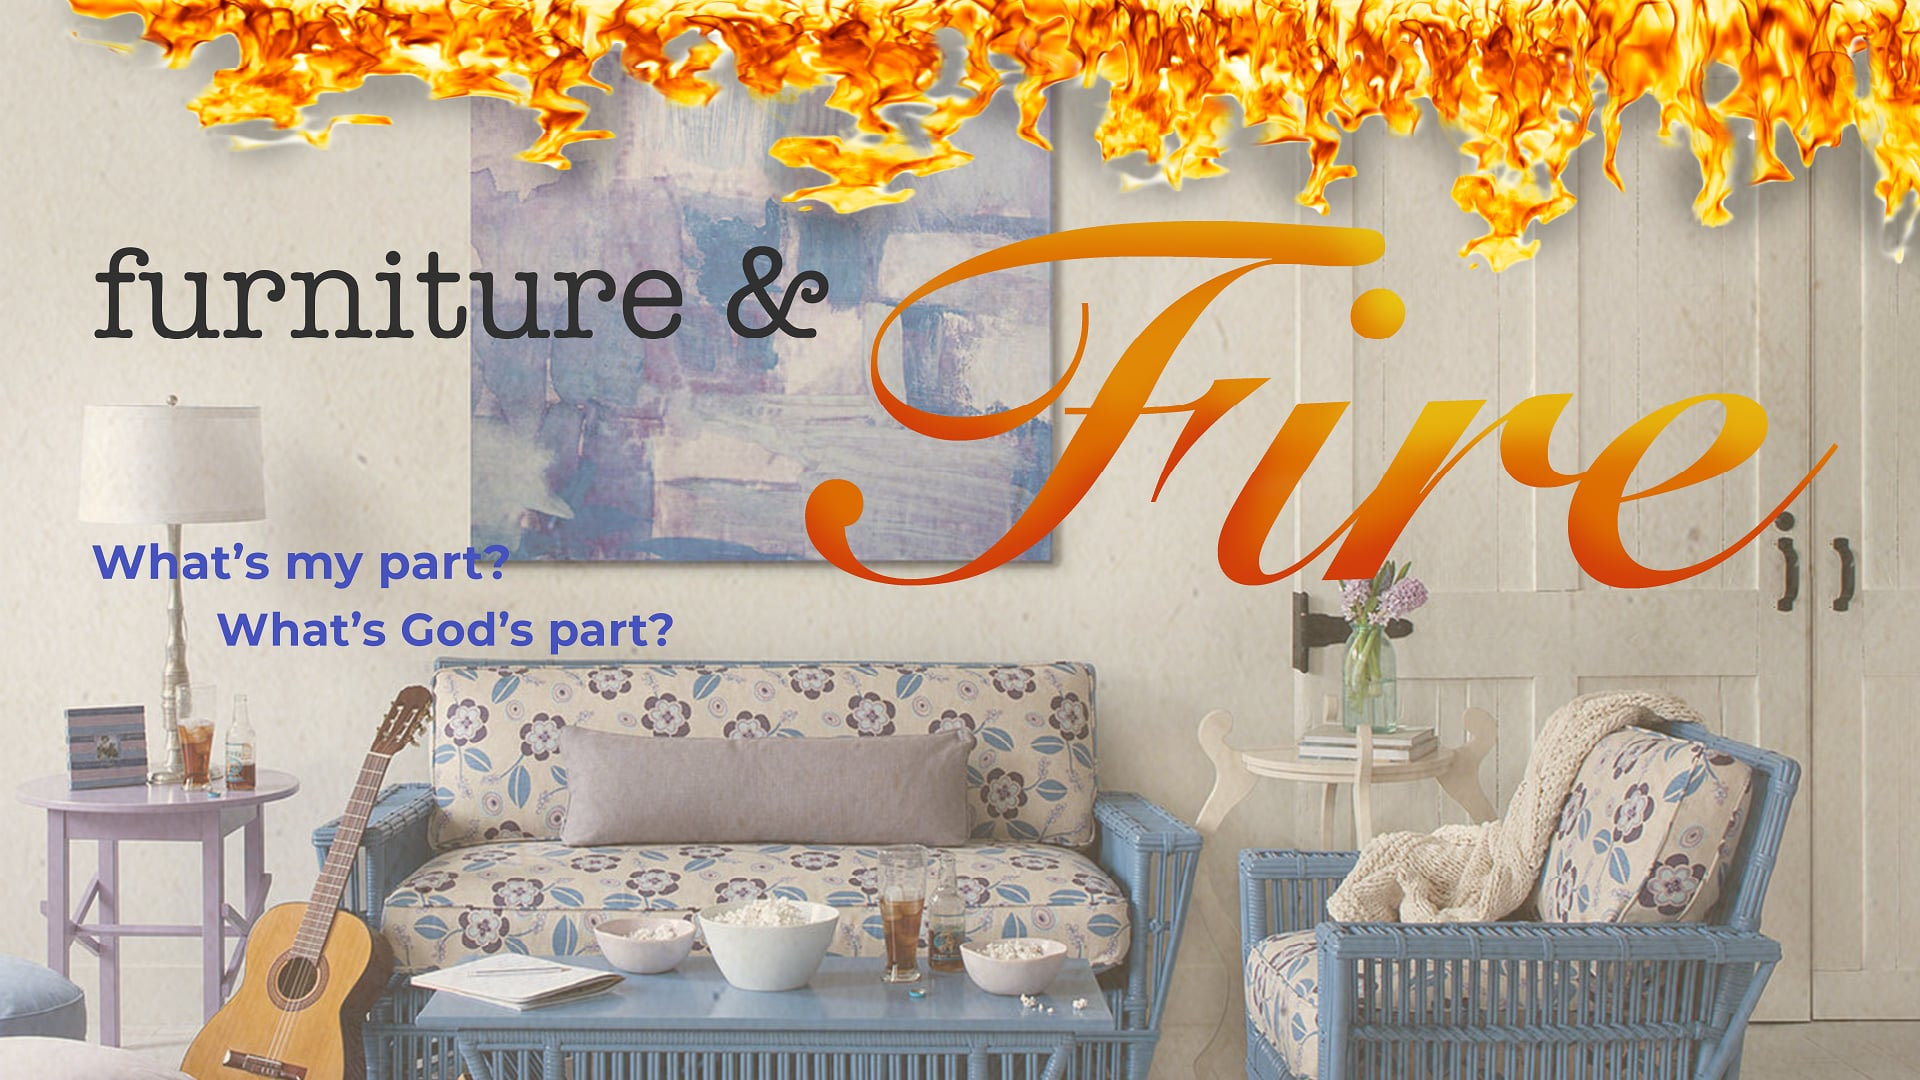 Furniture and Fire - Part 5